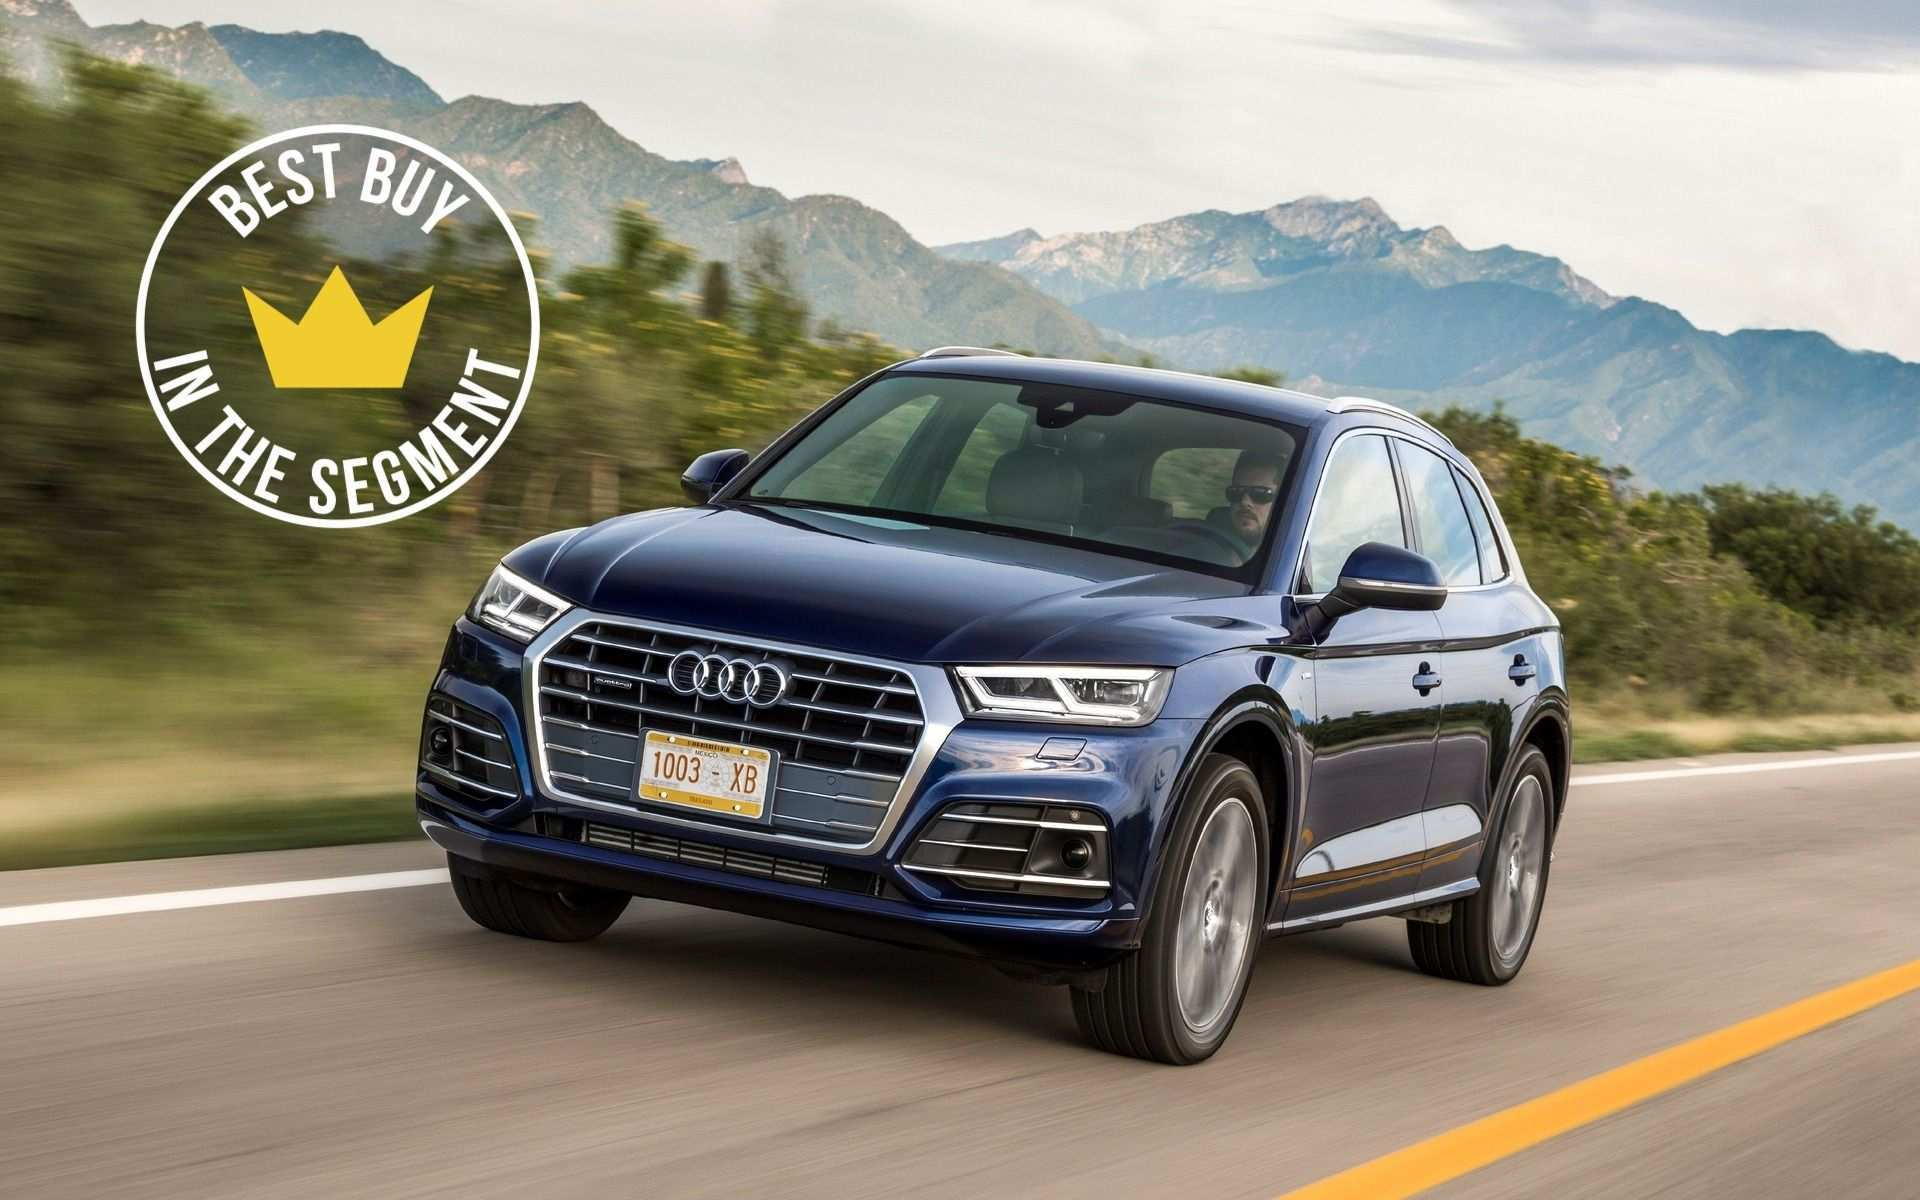 30 Great Audi Sq5 2019 Order Guide New Release Pictures with Audi Sq5 2019 Order Guide New Release